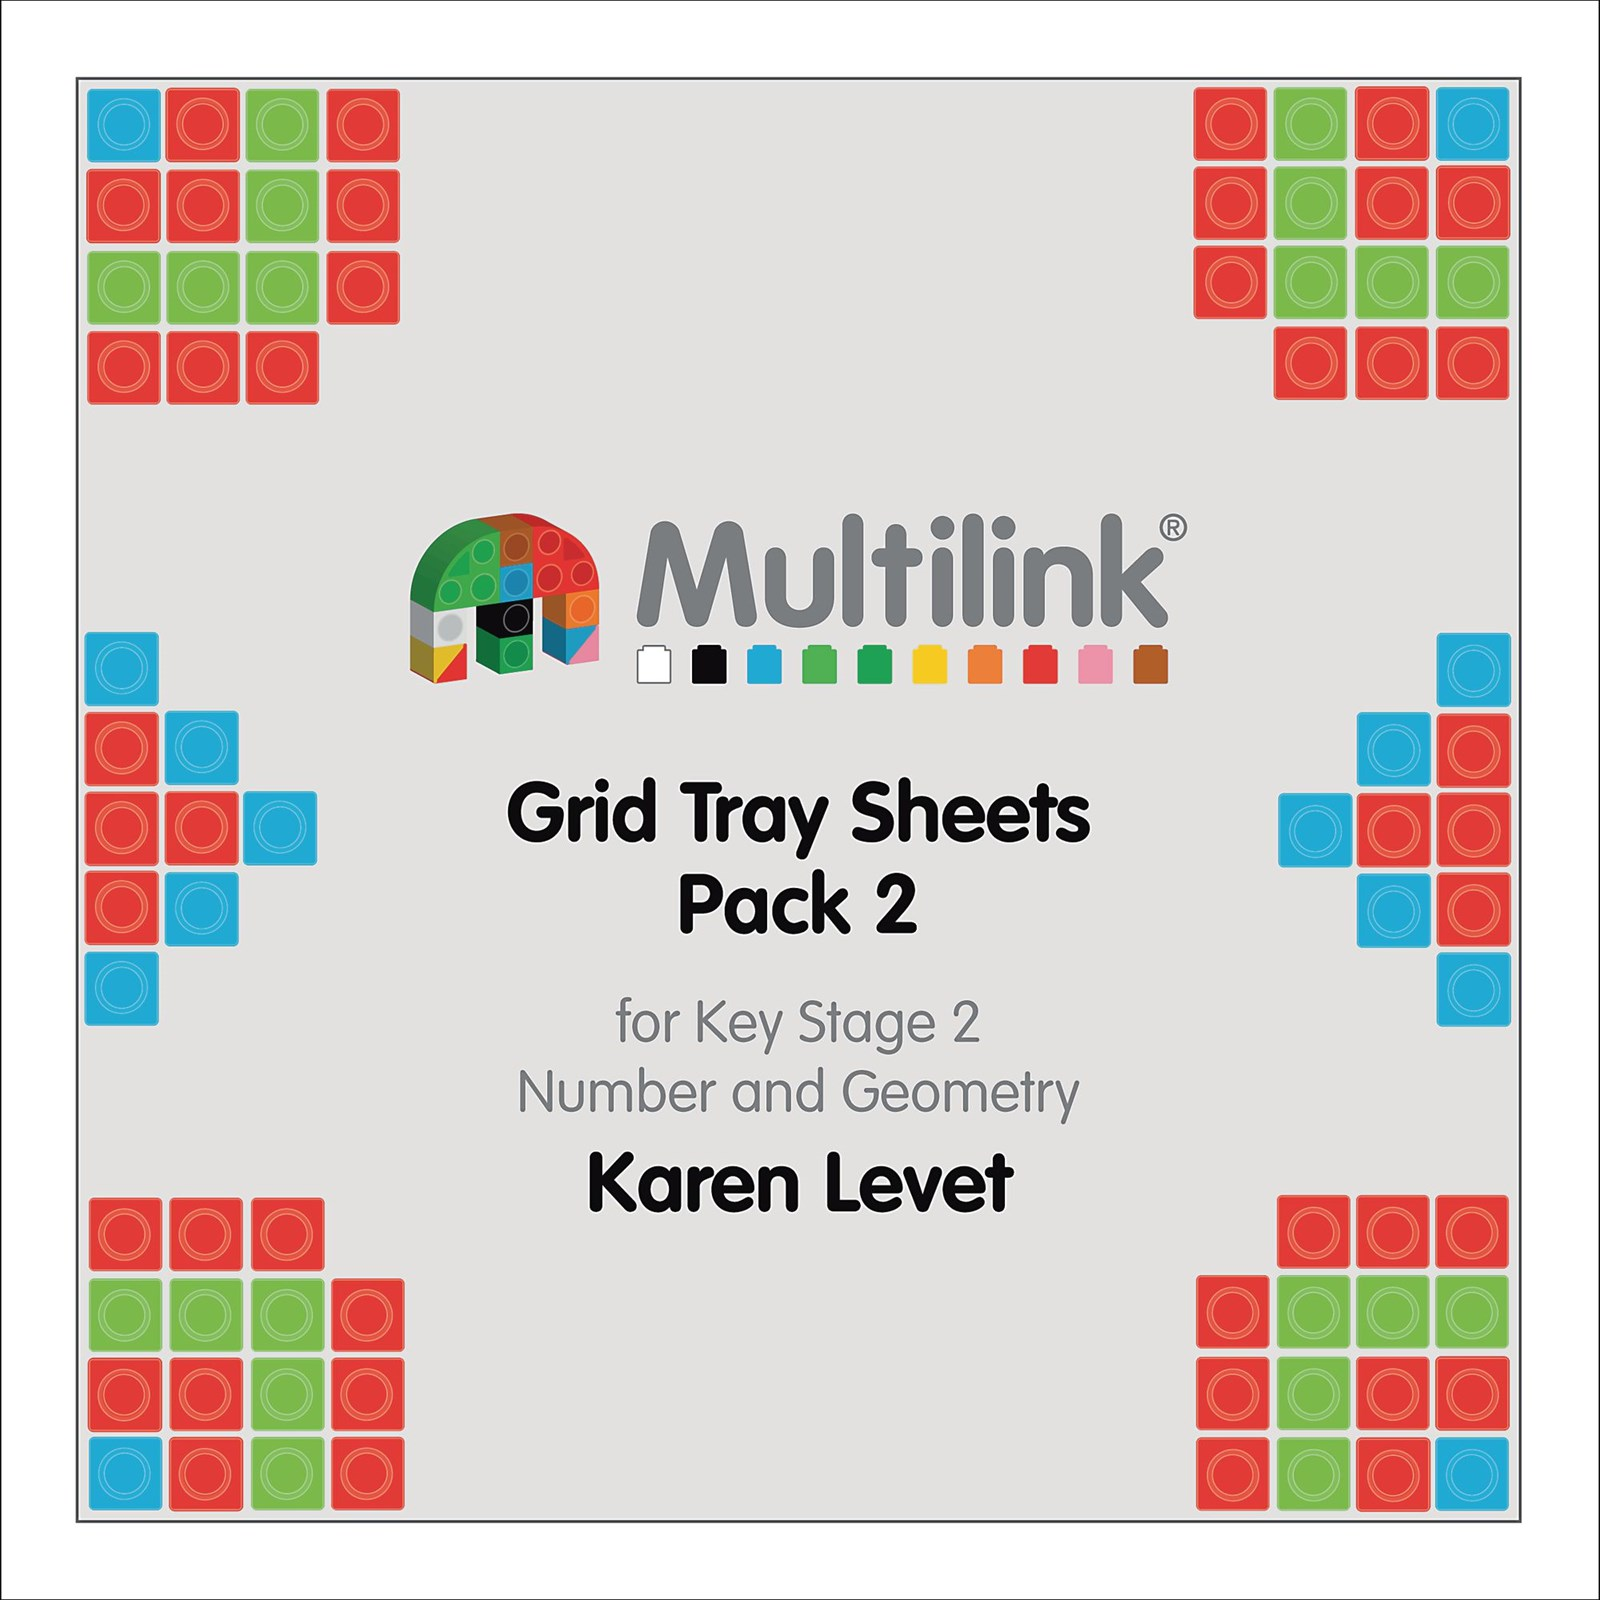 Multilink® Grid Tray Sheets Pack 2 for Key Stage 2 - Number and ...